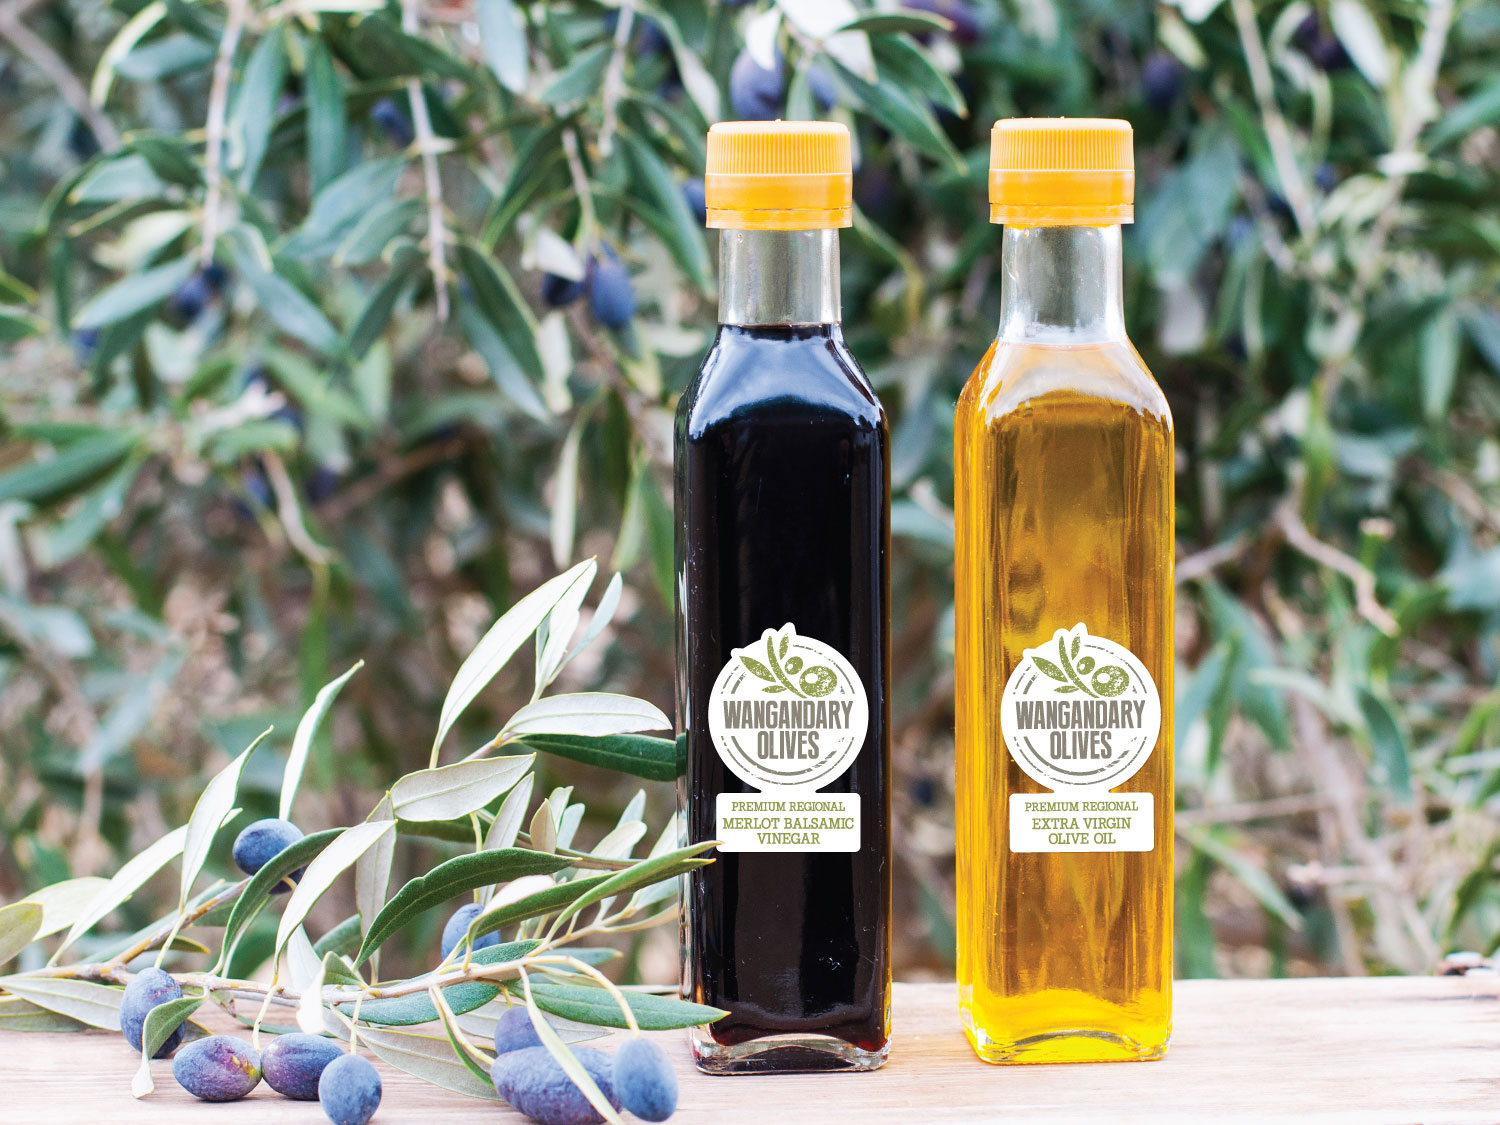 Wangandary Olives Bottle Labels